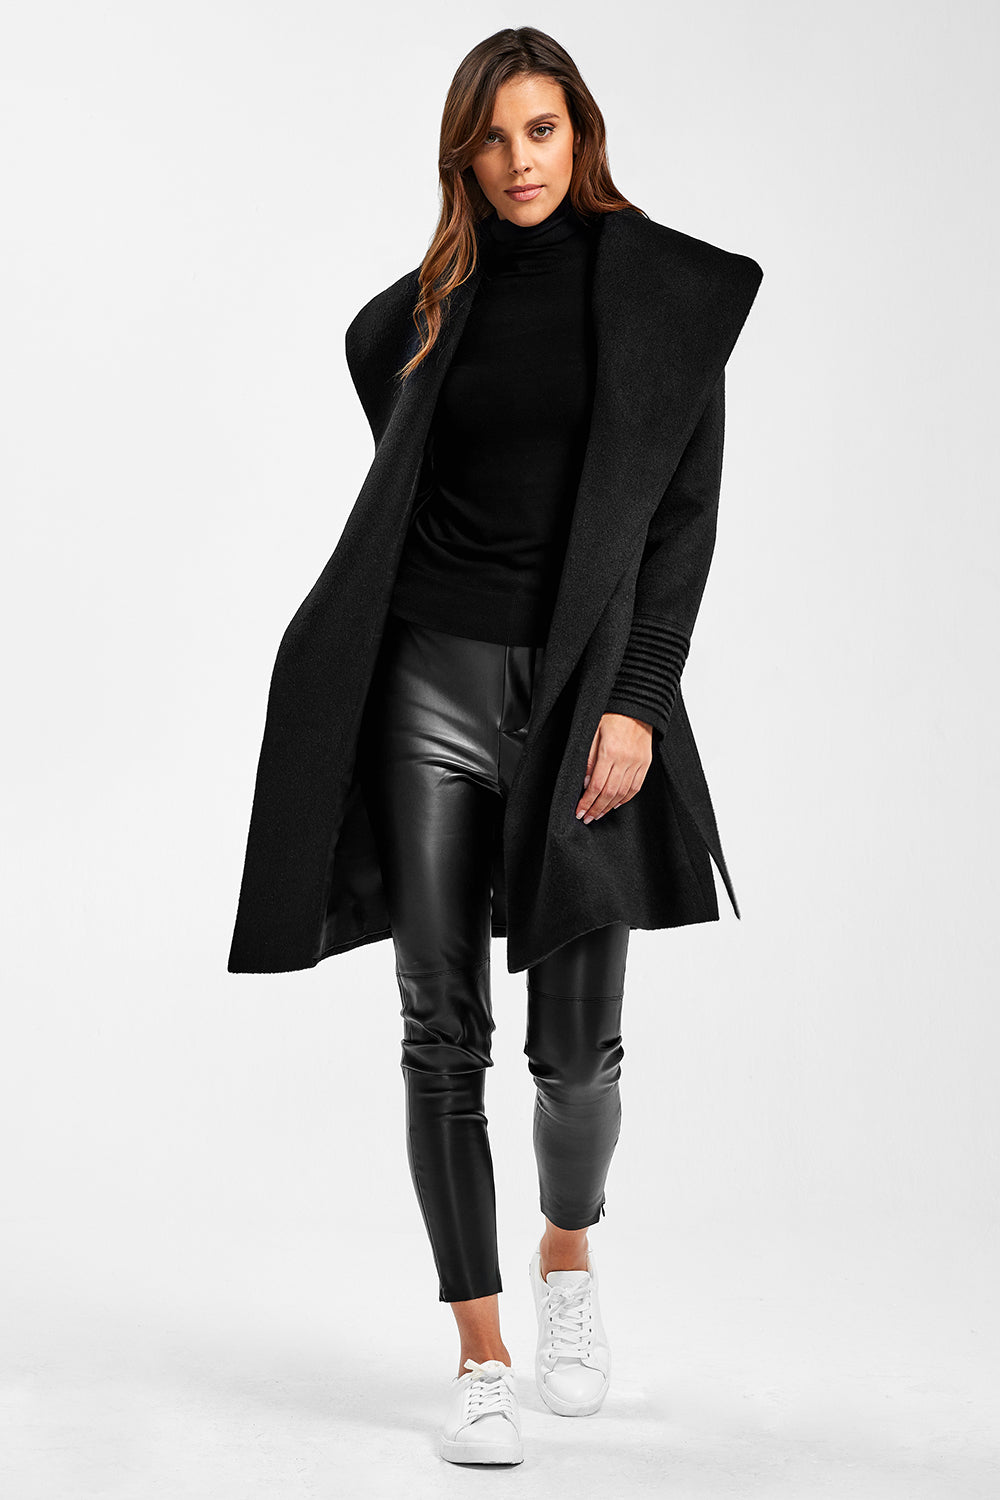 Sentaler Mid Length Shawl Collar Wrap Coat featured in Baby Alpaca and available in Black. Seen open.